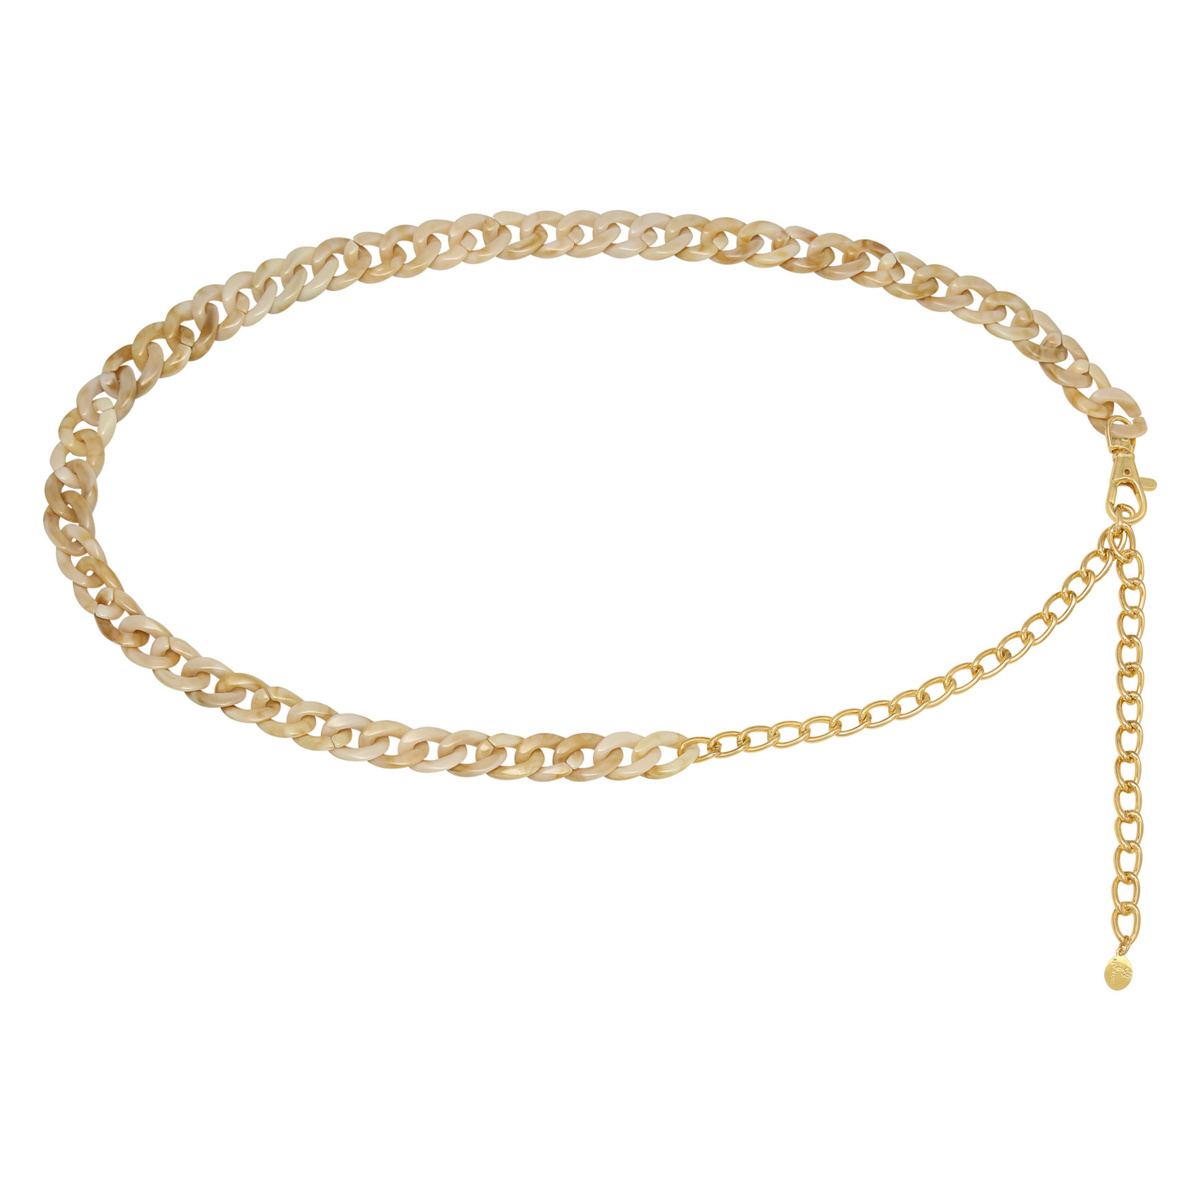 By Moise Riem Chained beige